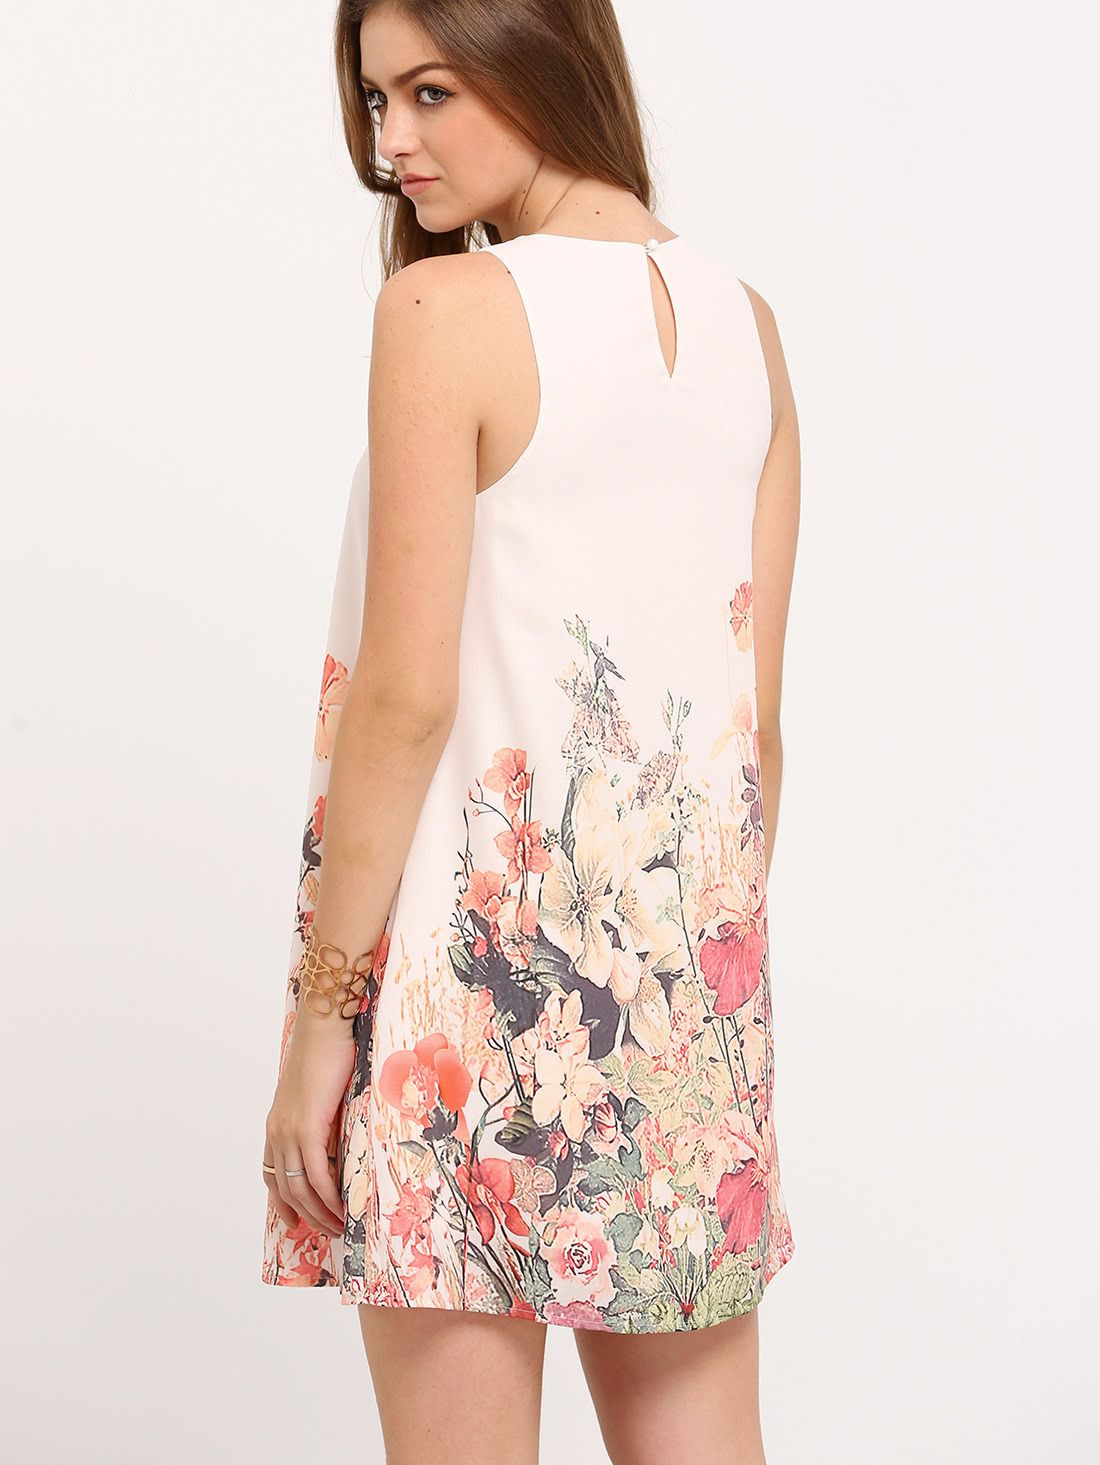 139d2ccfc6 Shop Floral Print Keyhole Back Tank Dress online. SheIn offers Floral Print  Keyhole Back Tank Dress & more to fit your fashionable needs.